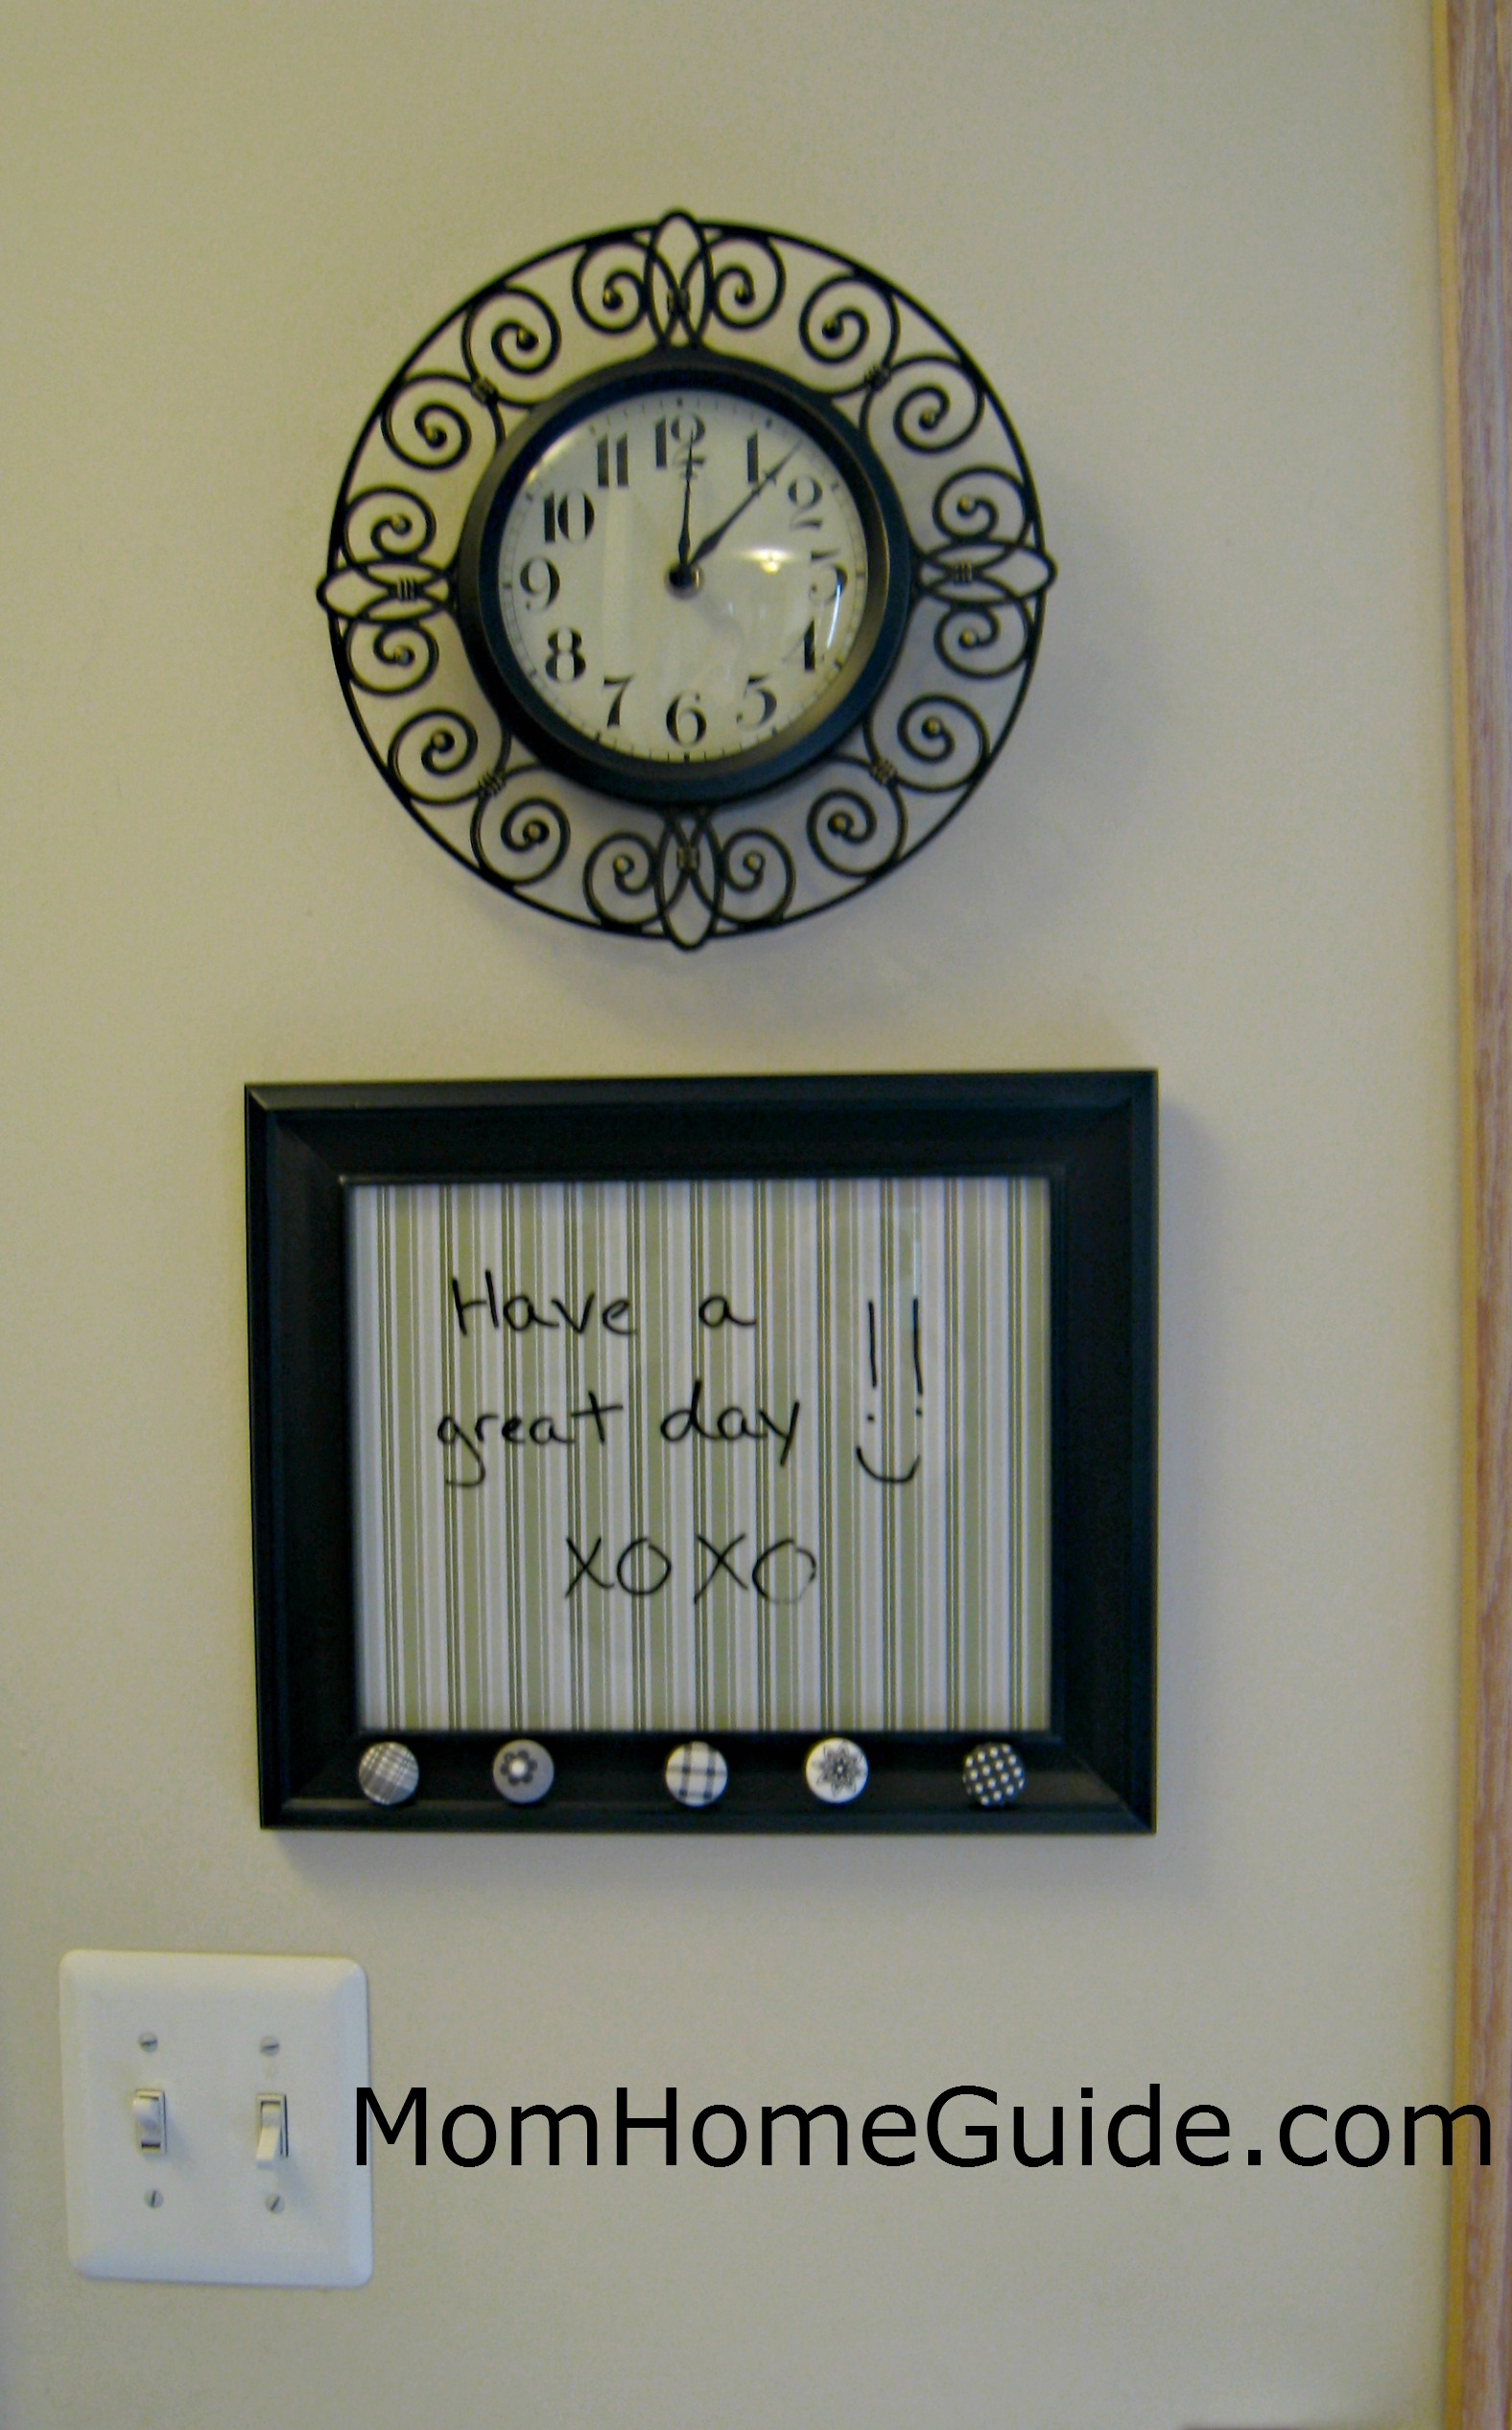 Picture Frame Dry Erase Board - momhomeguide.com